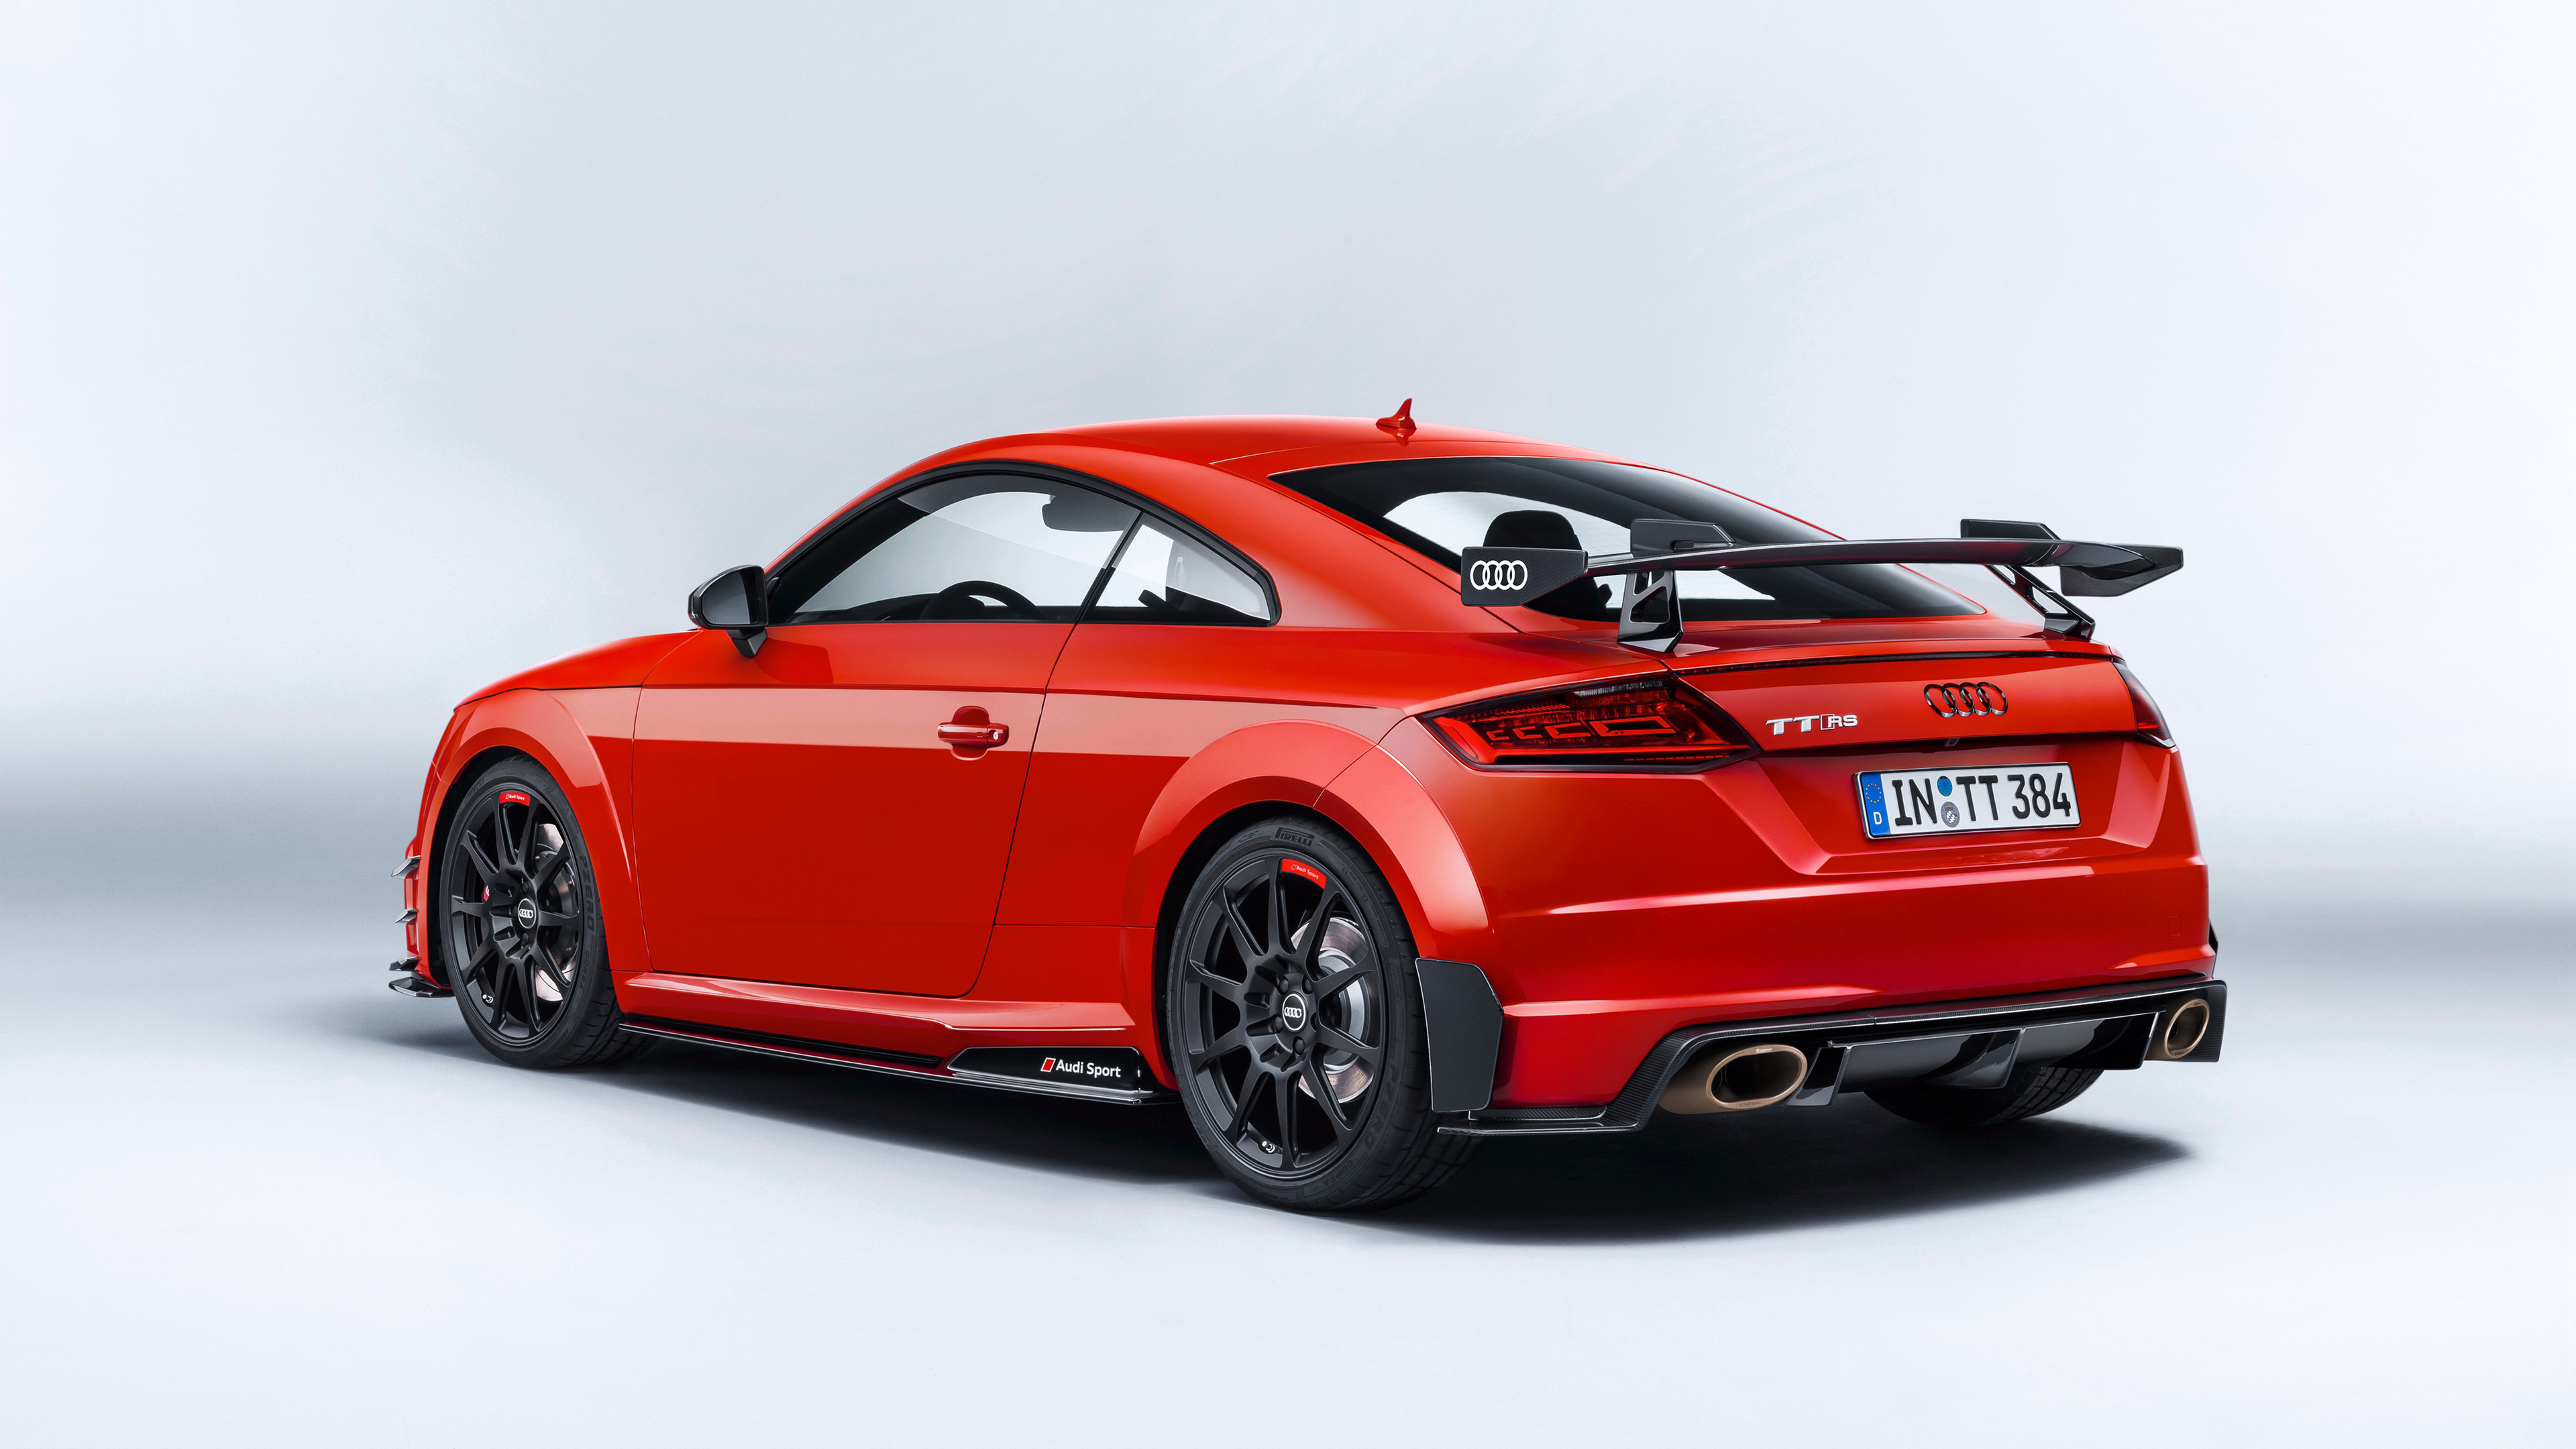 audi tt rs performance parts rear 1539105888 - Audi TT RS Performance Parts Rear - hd-wallpapers, cars wallpapers, audi wallpapers, audi tt wallpapers, 4k-wallpapers, 2017 cars wallpapers